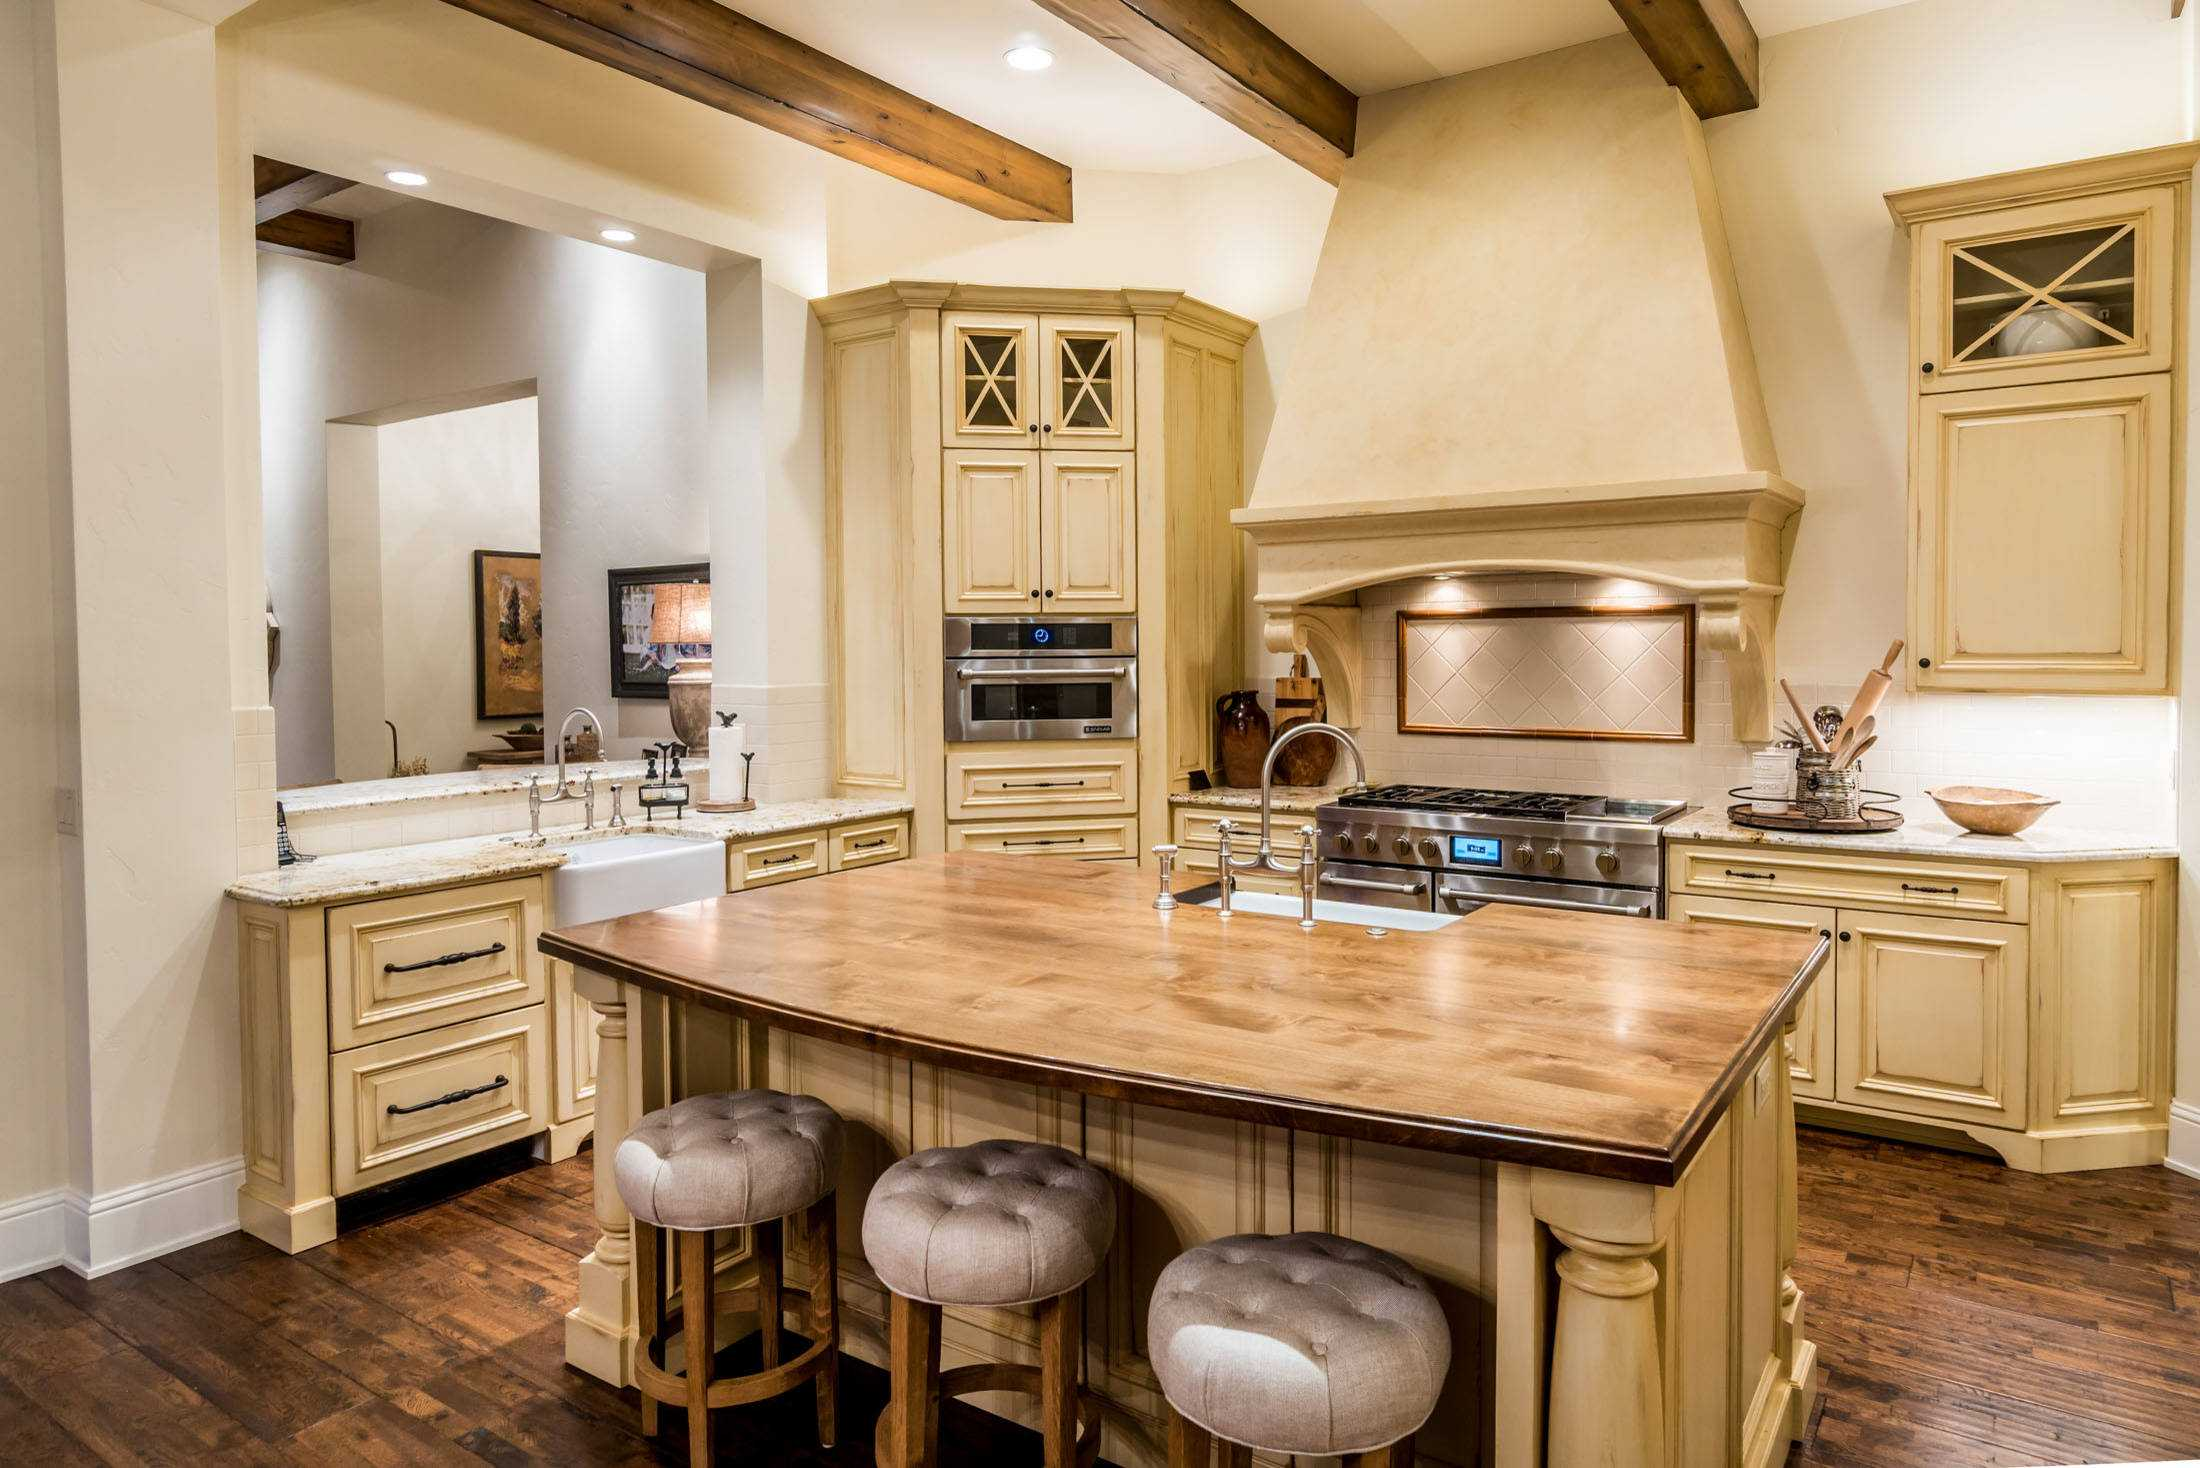 15 inspirational rustic kitchen designs you will adore 2336